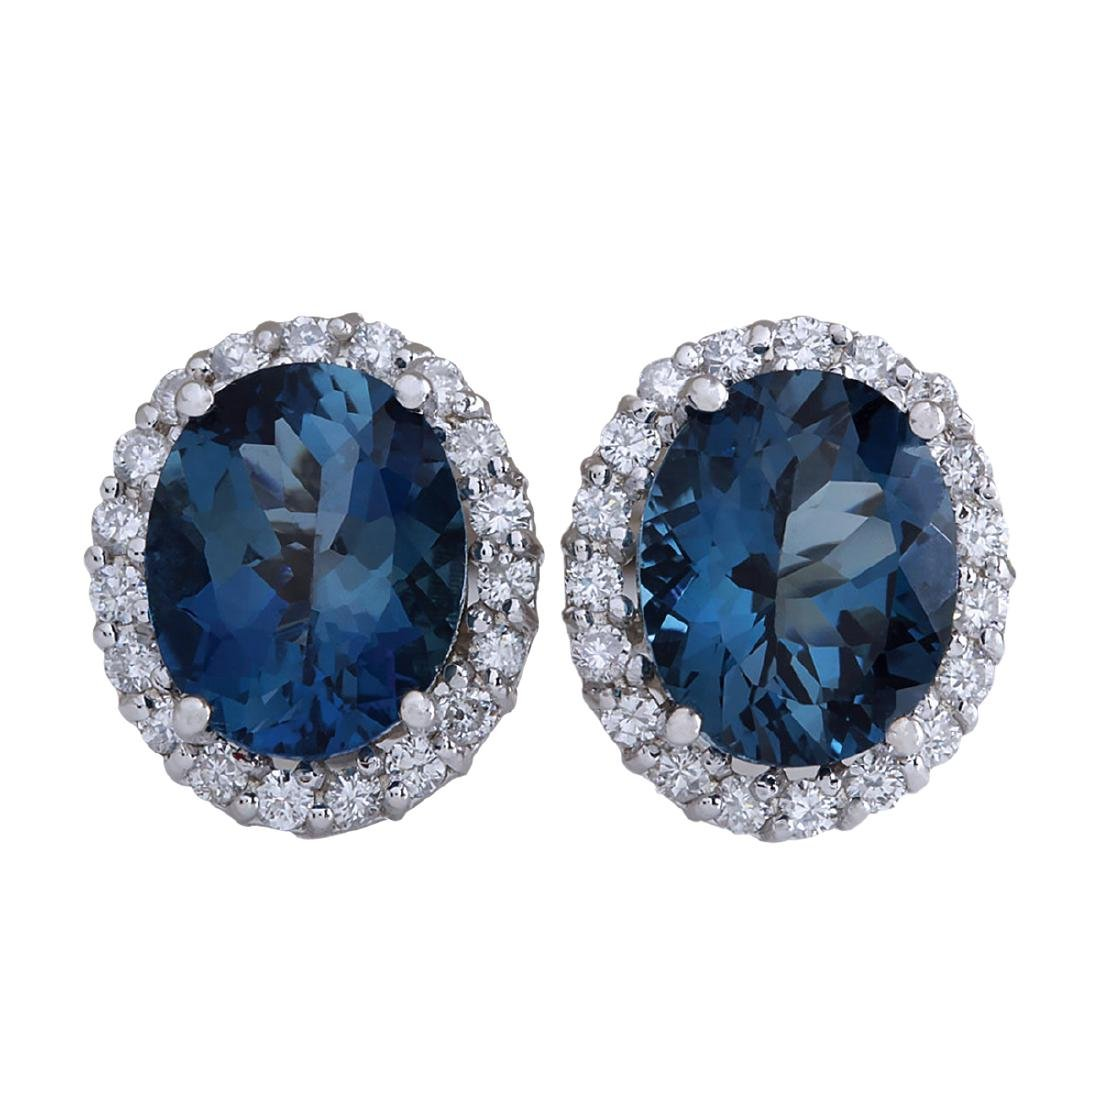 8.55CTW Natural Topaz And Diamond Earrings 18K Solid